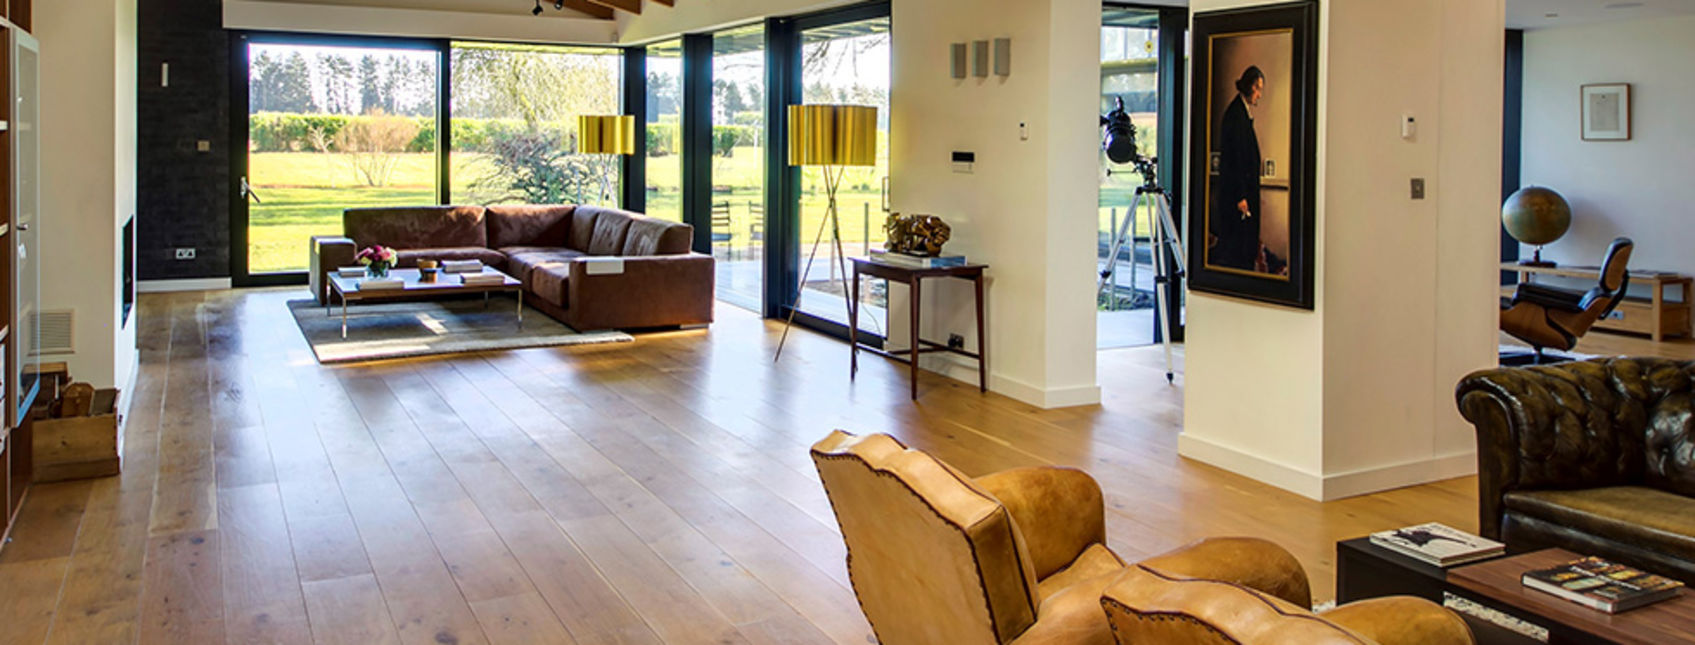 Stunning oak flooring in living area